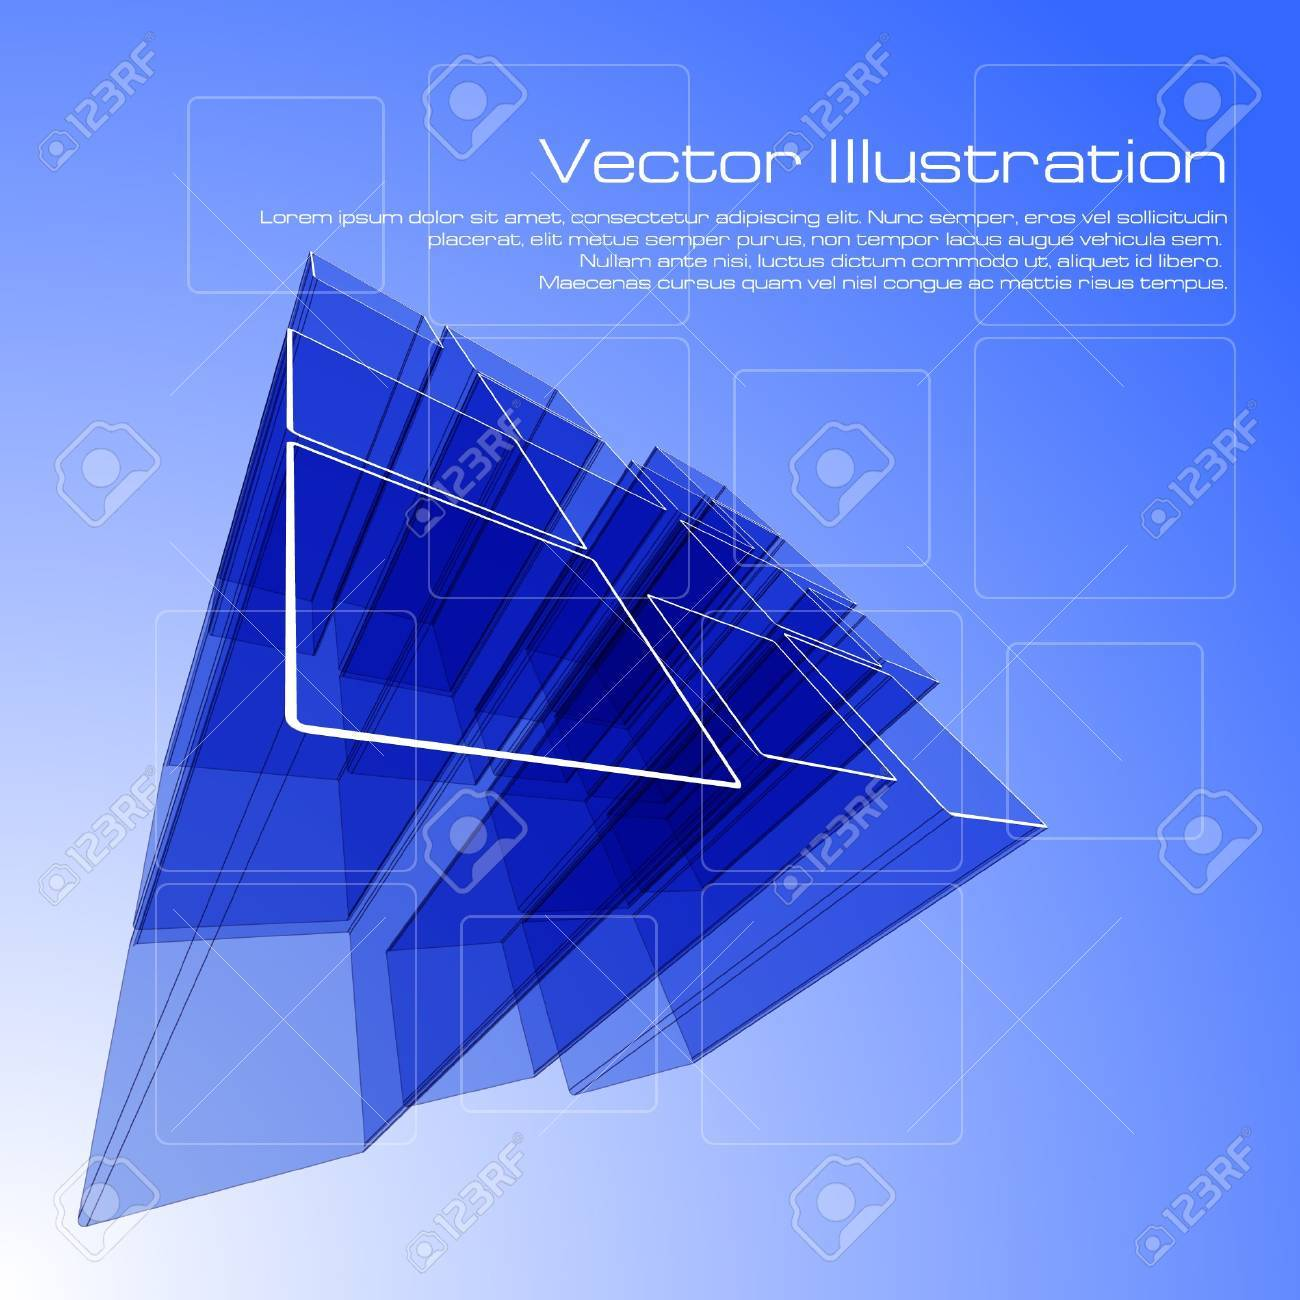 Abstract squares design for use as a background - 7749798